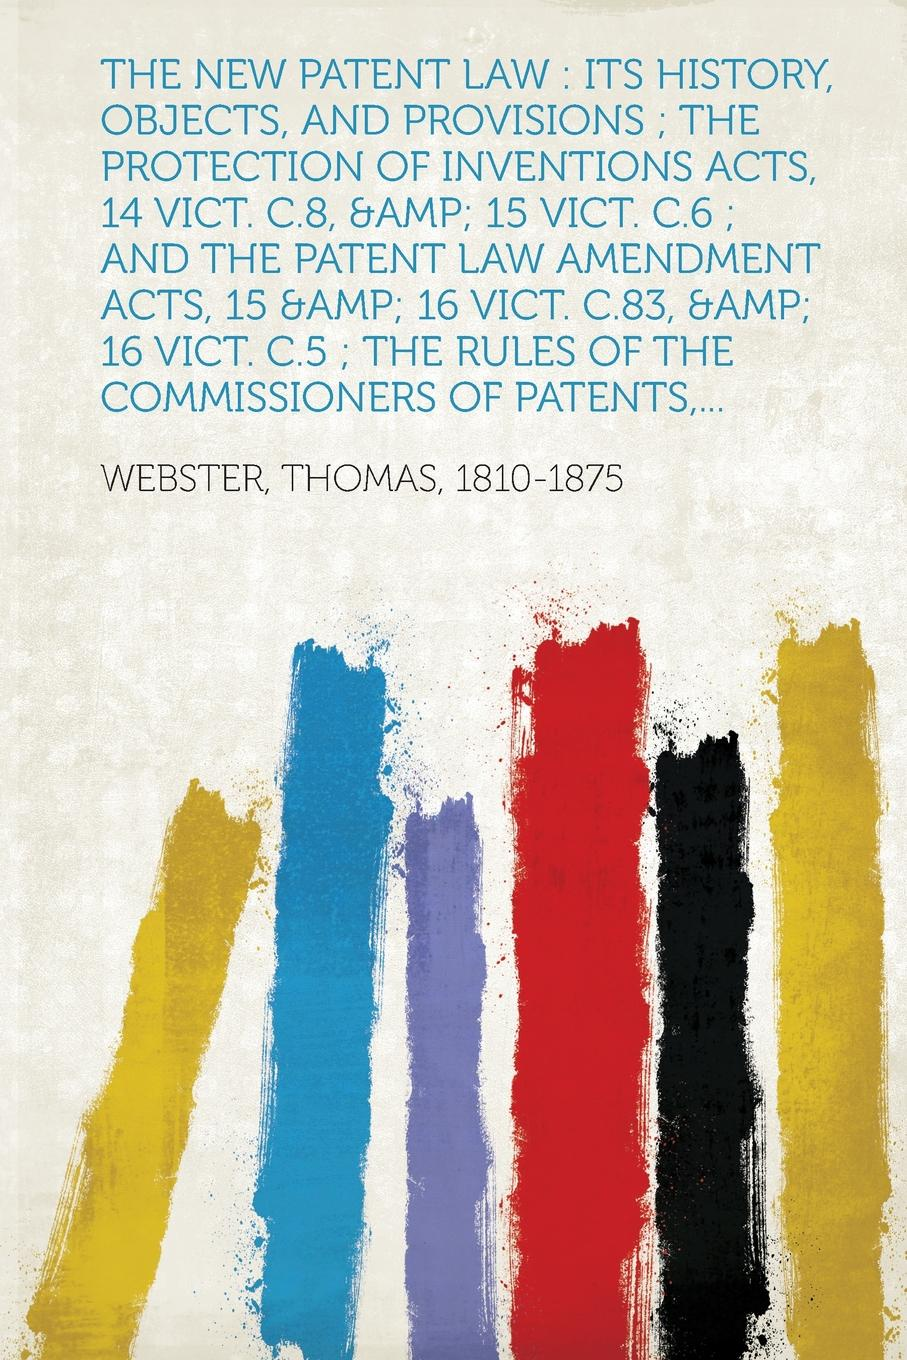 The New Patent Law. Its History, Objects, and Provisions ; the Protection of Inventions Acts, 14 Vict. C.8, &Amp; 15 C.6 Law Amendment 16 C.83, C.5 Rules Commissioners Pate...